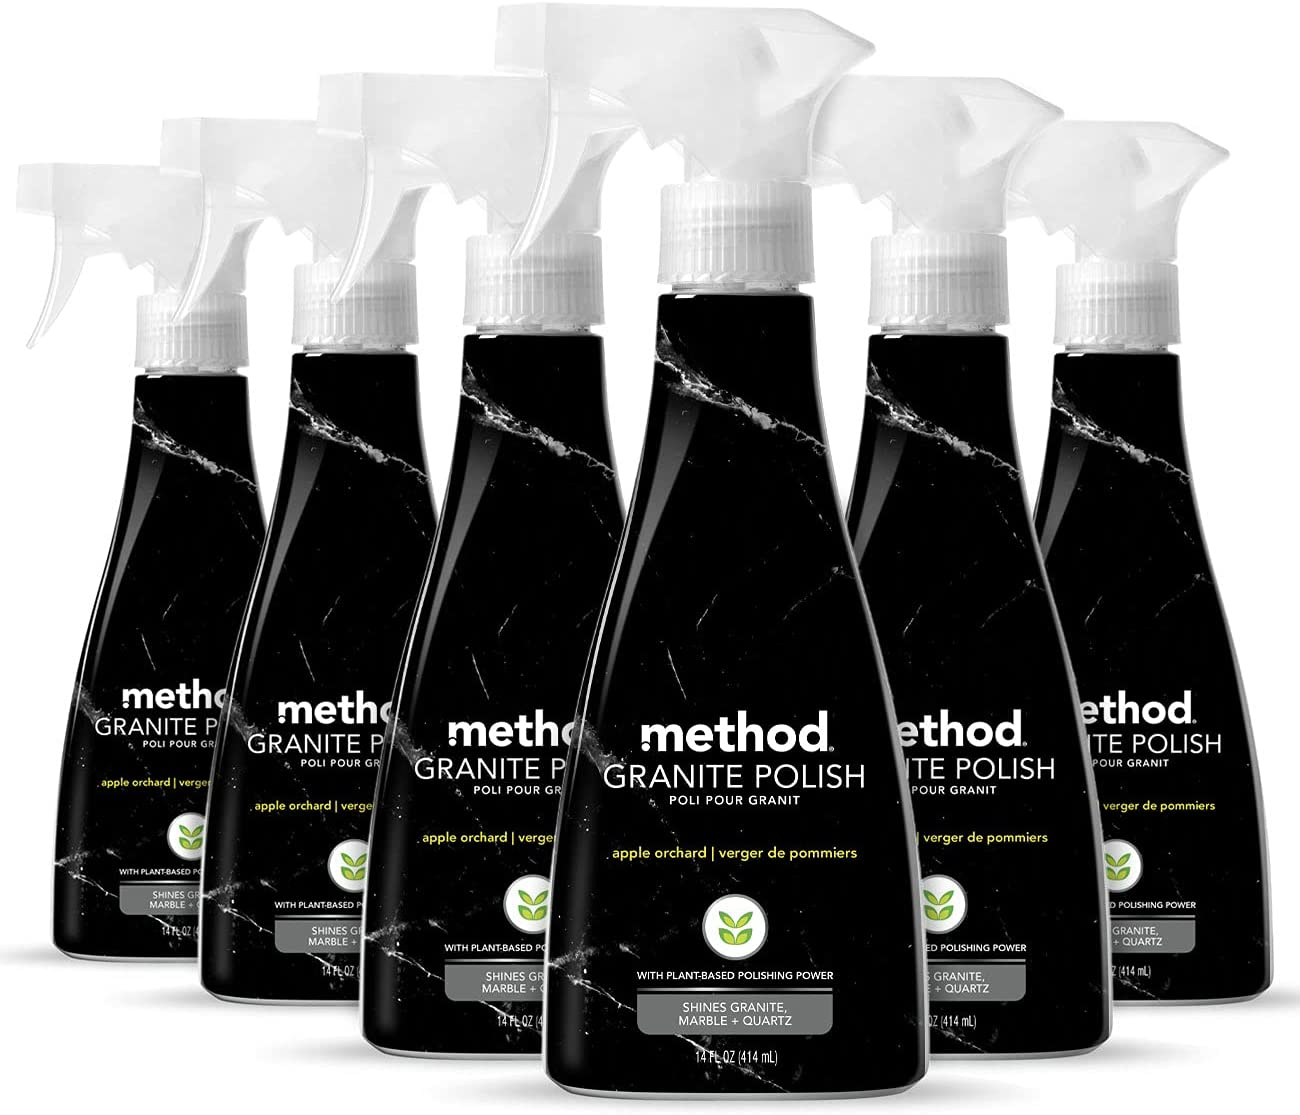 Method Granite Polish, Apple Orchard, 14 Ounces., 6 pack, Packaging May Vary